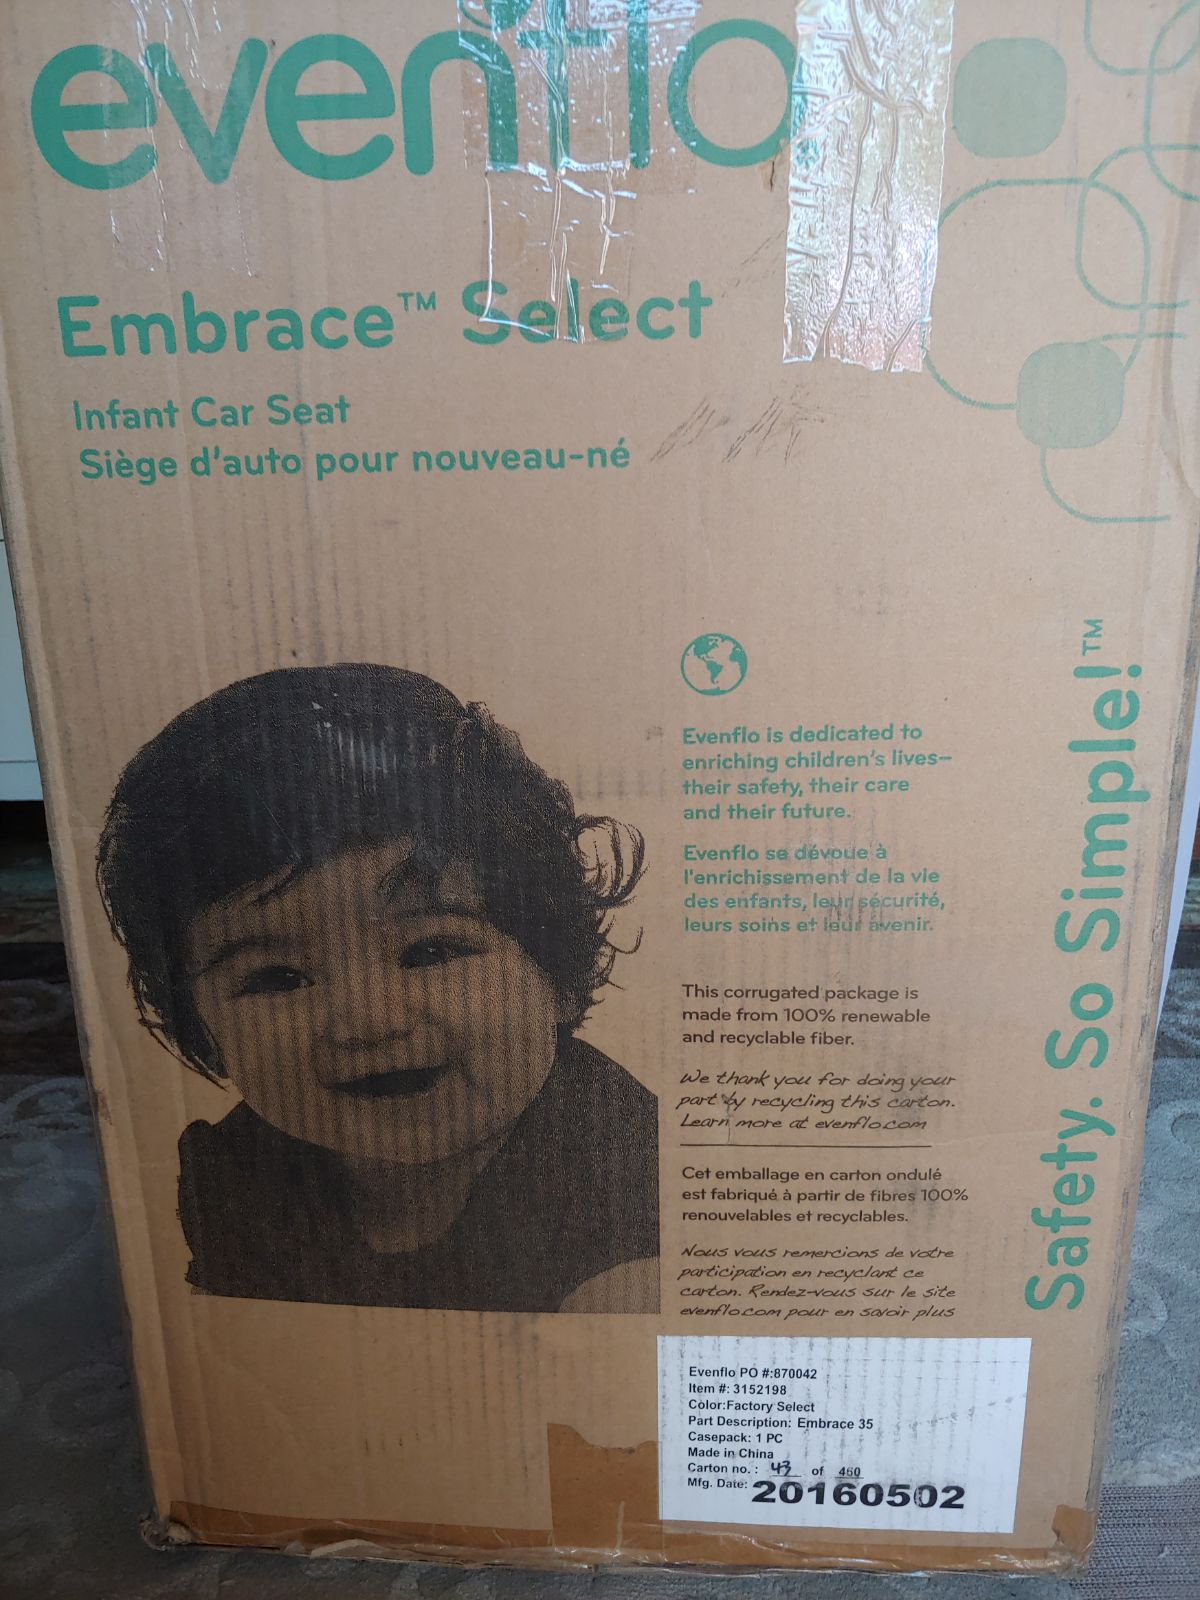 Evenflo Embrace Select Infant Carseat